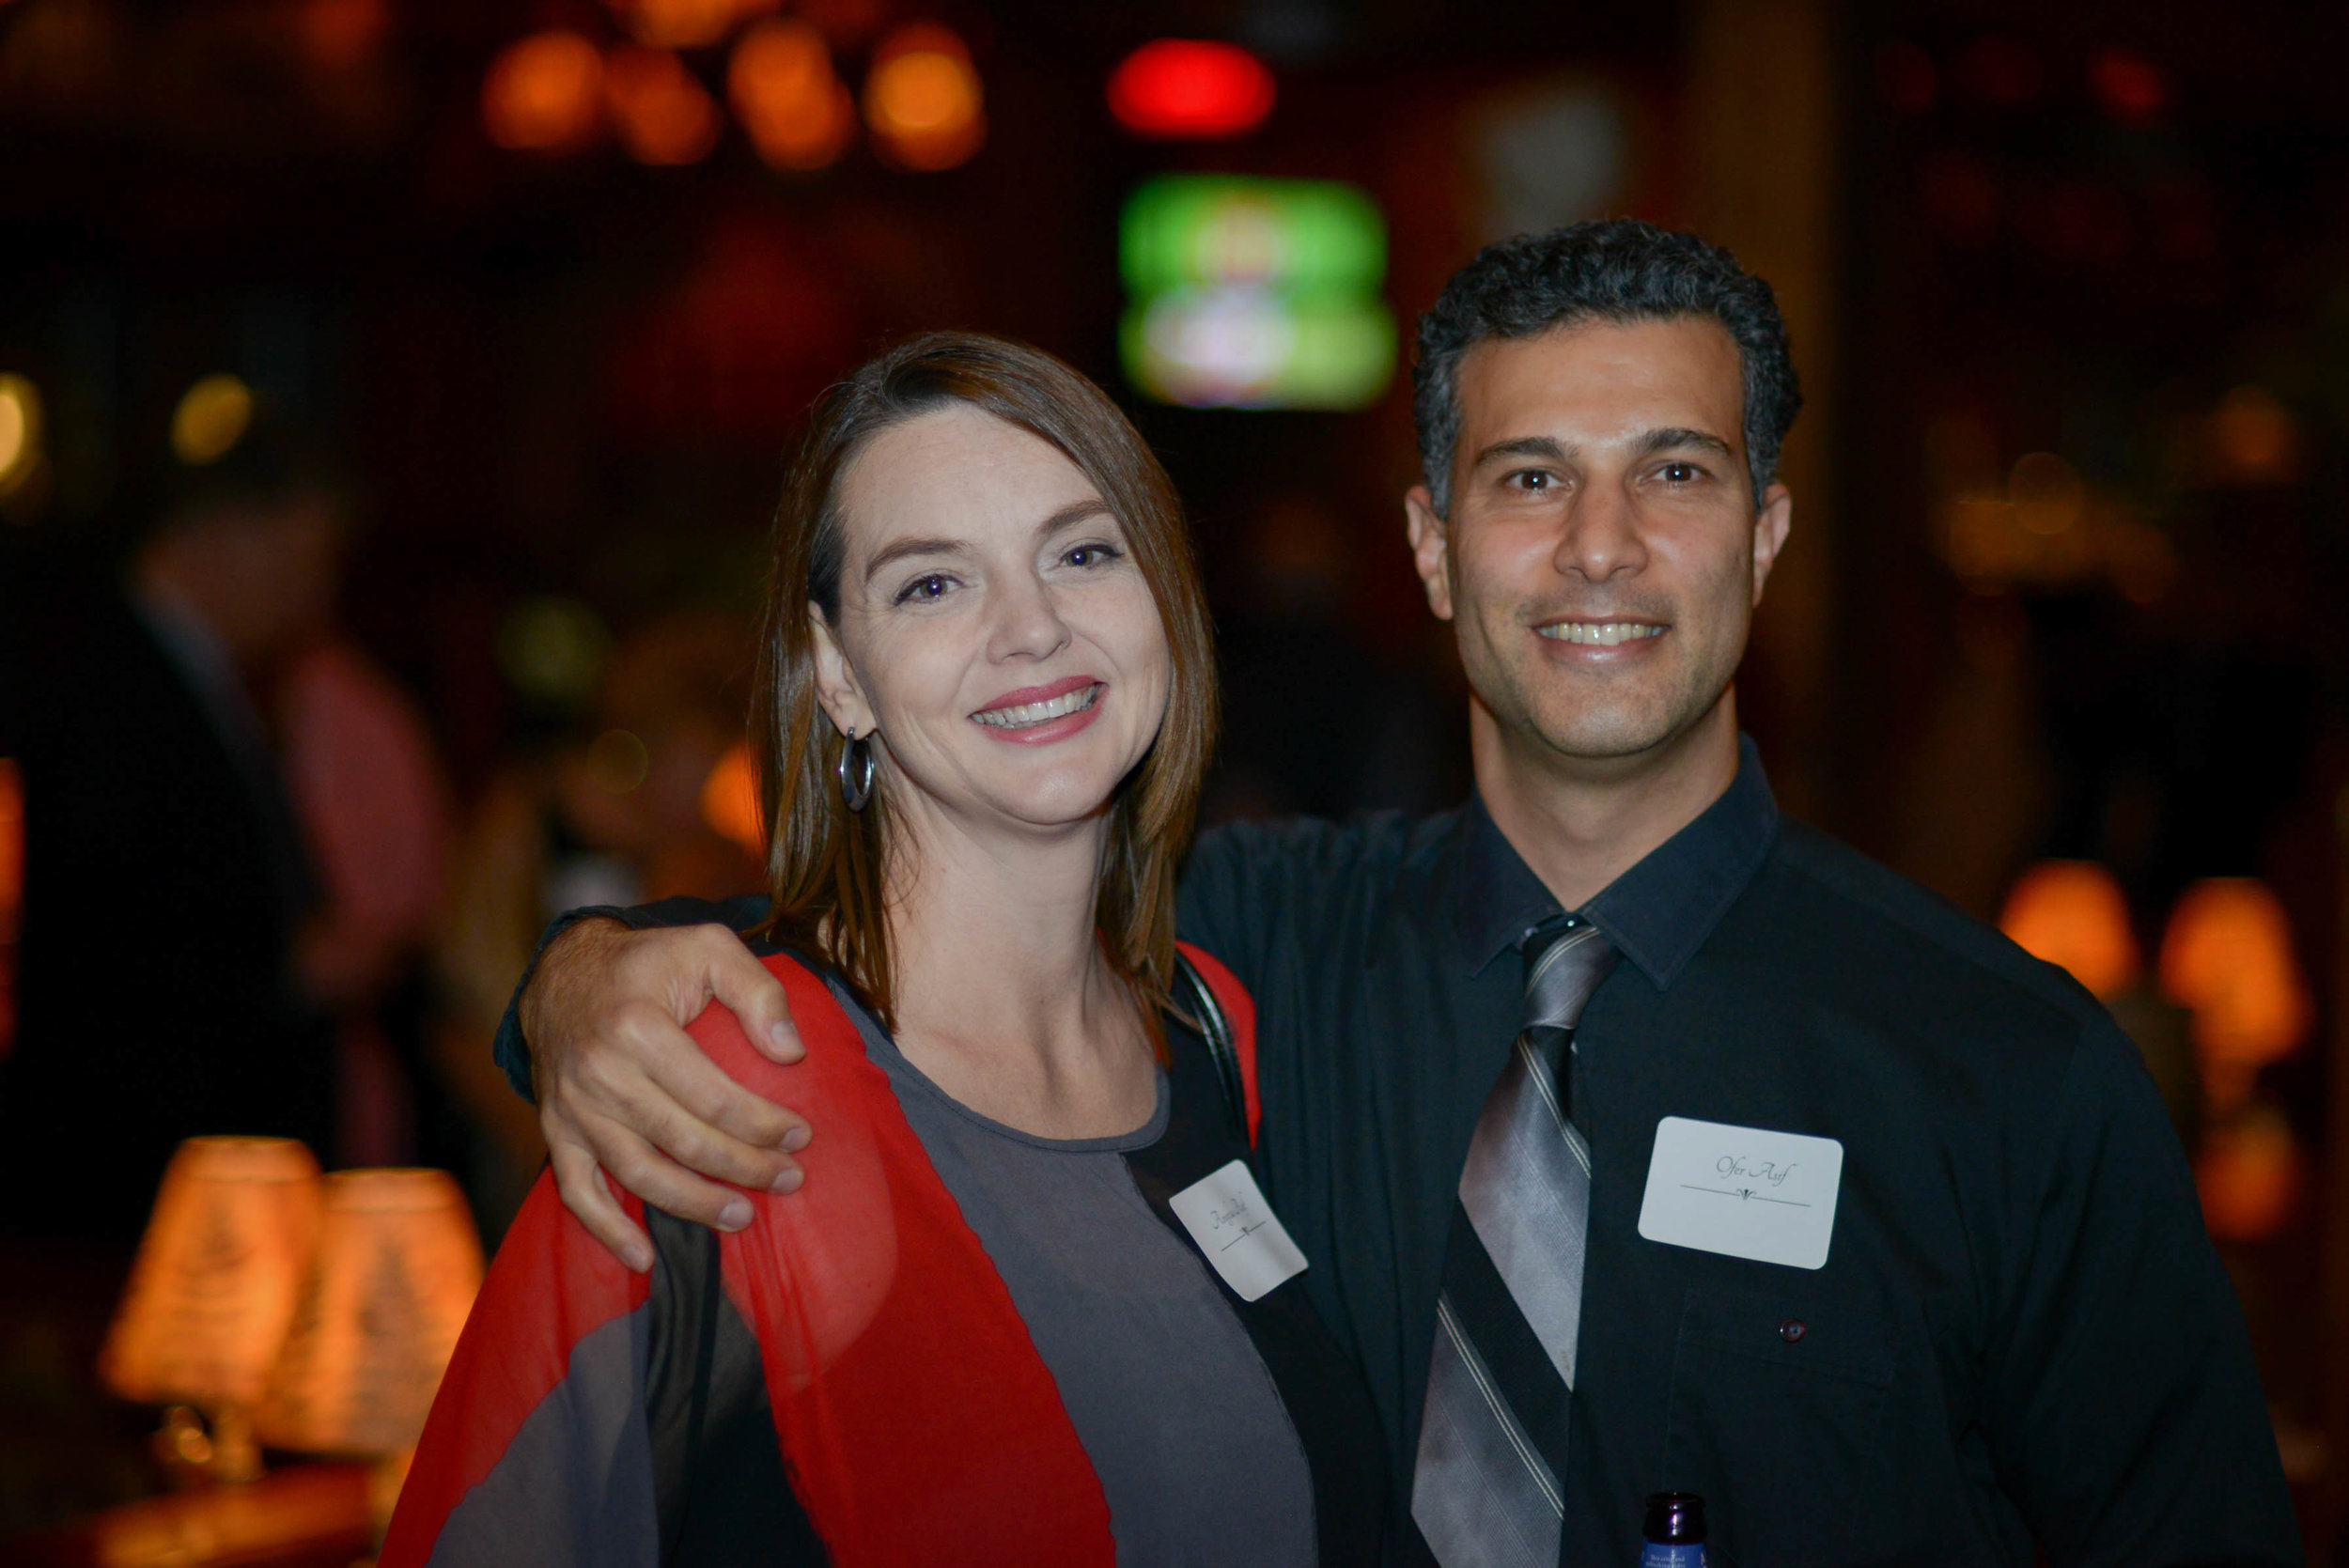 Procentrix Corporate Happy Hour at Clyde's Willow Creek Ashburn VA